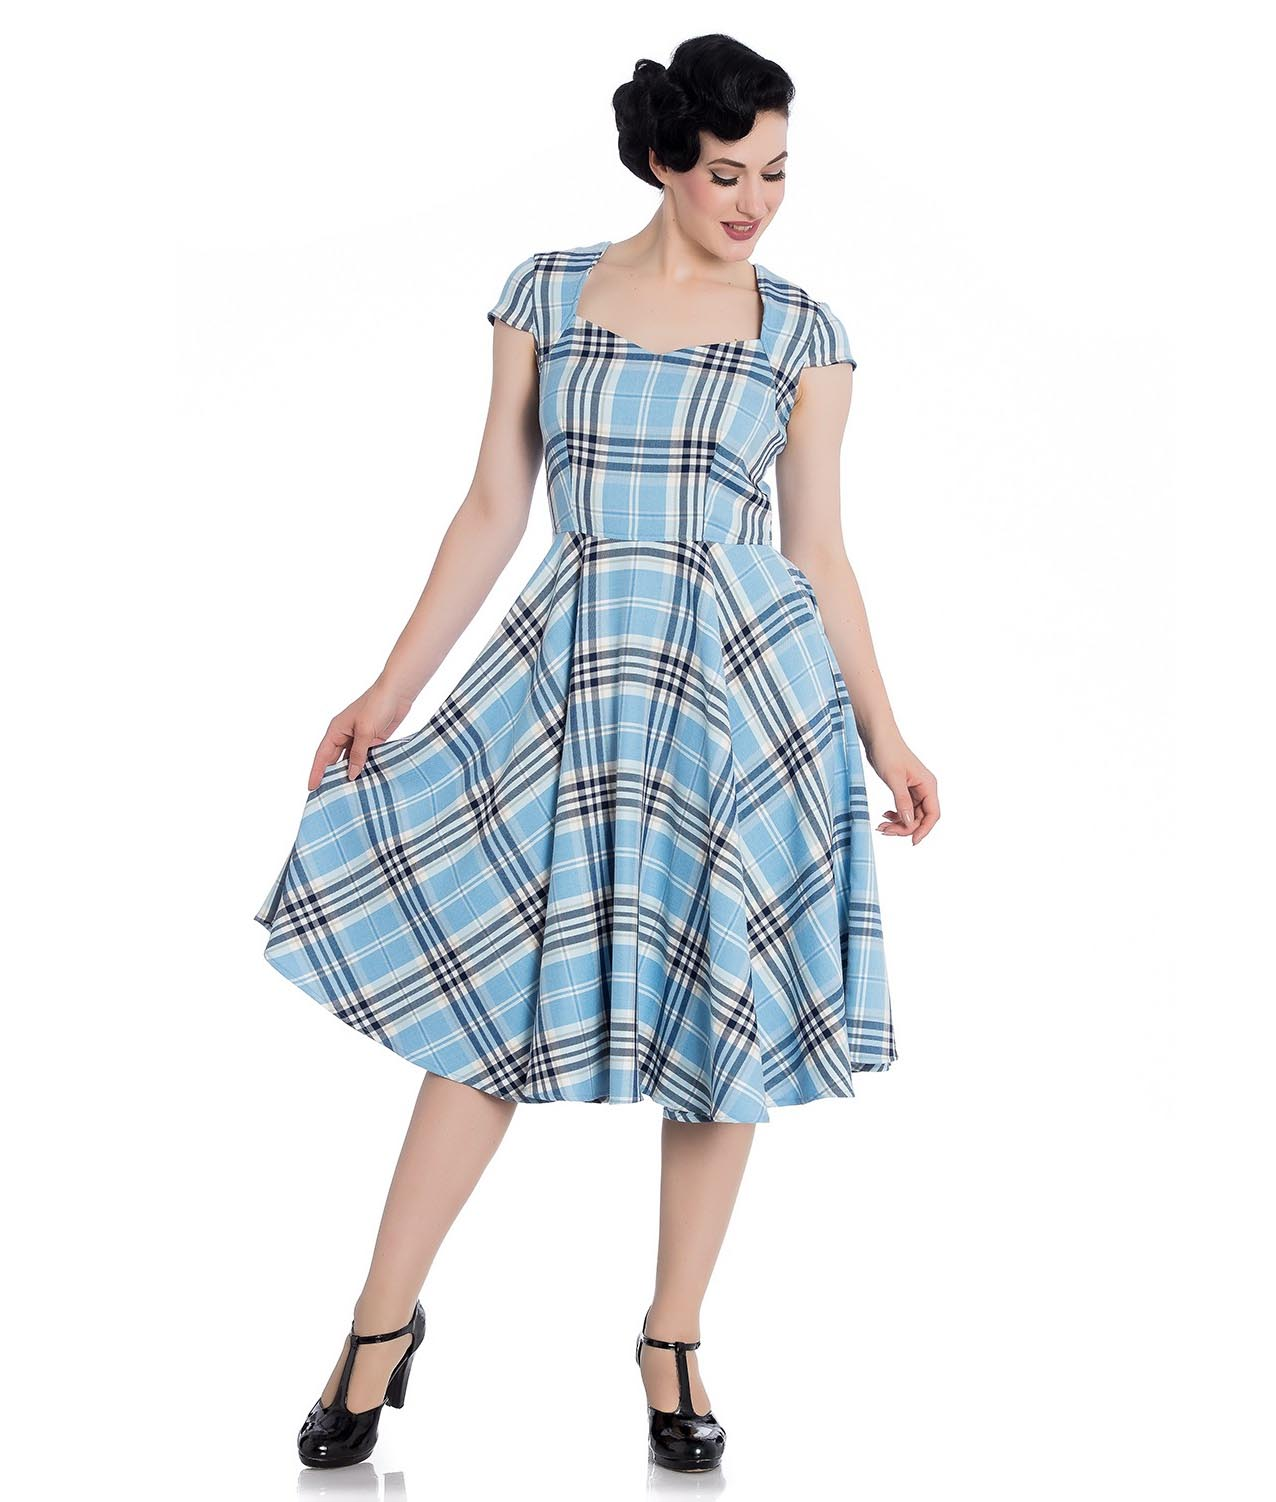 Hell-Bunny-Pinup-50s-Dress-ABERDEEN-Hogmony-Sky-Blue-amp-White-Tartan-All-Sizes thumbnail 15